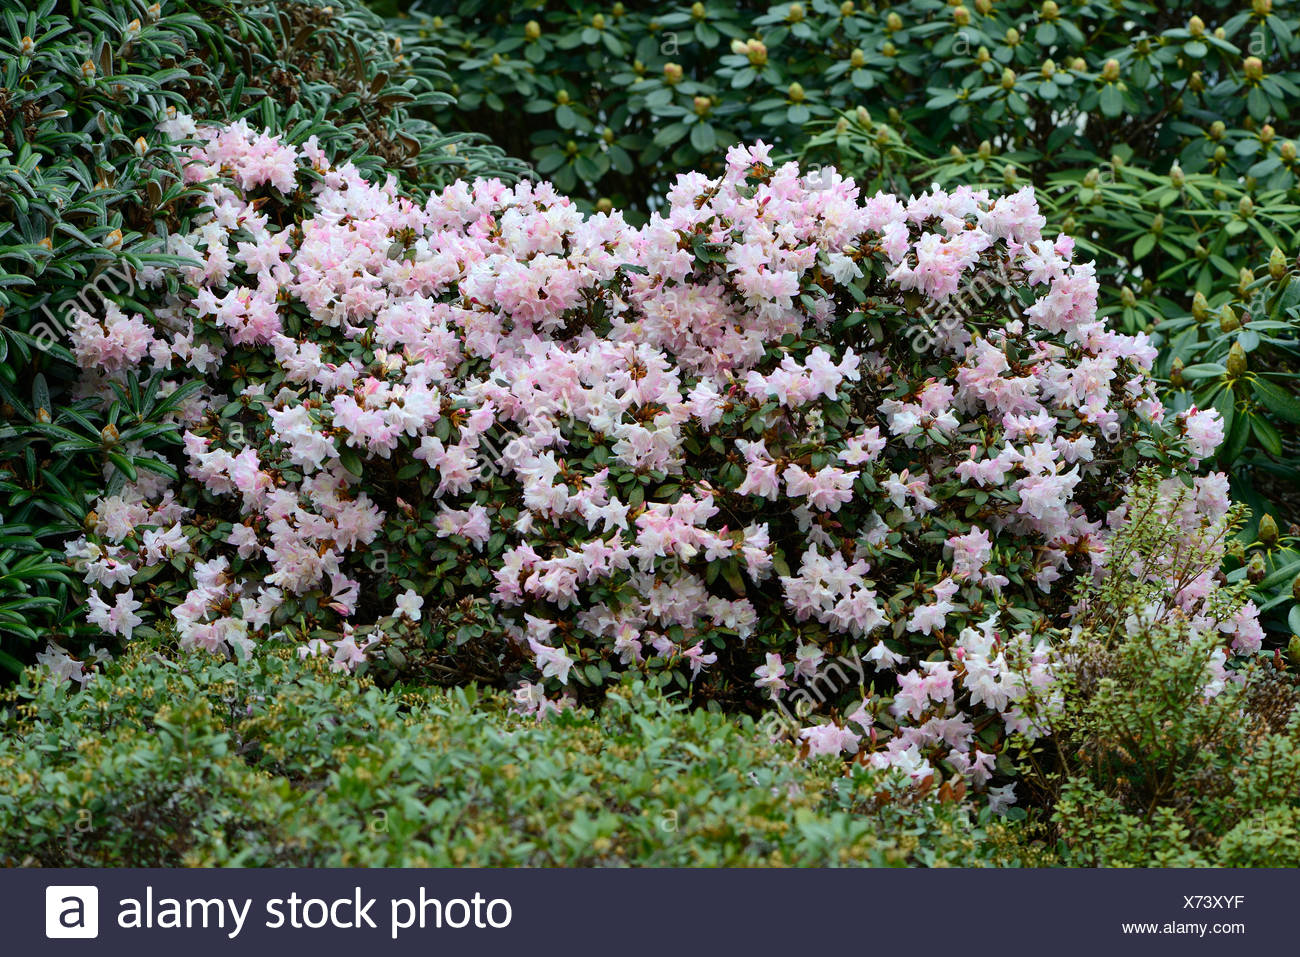 Blooming Rhododendron Ginny Gee (Rhododendron keiskei hybrid), Haren, Emsland, Lower Saxony, Germany - Stock Image